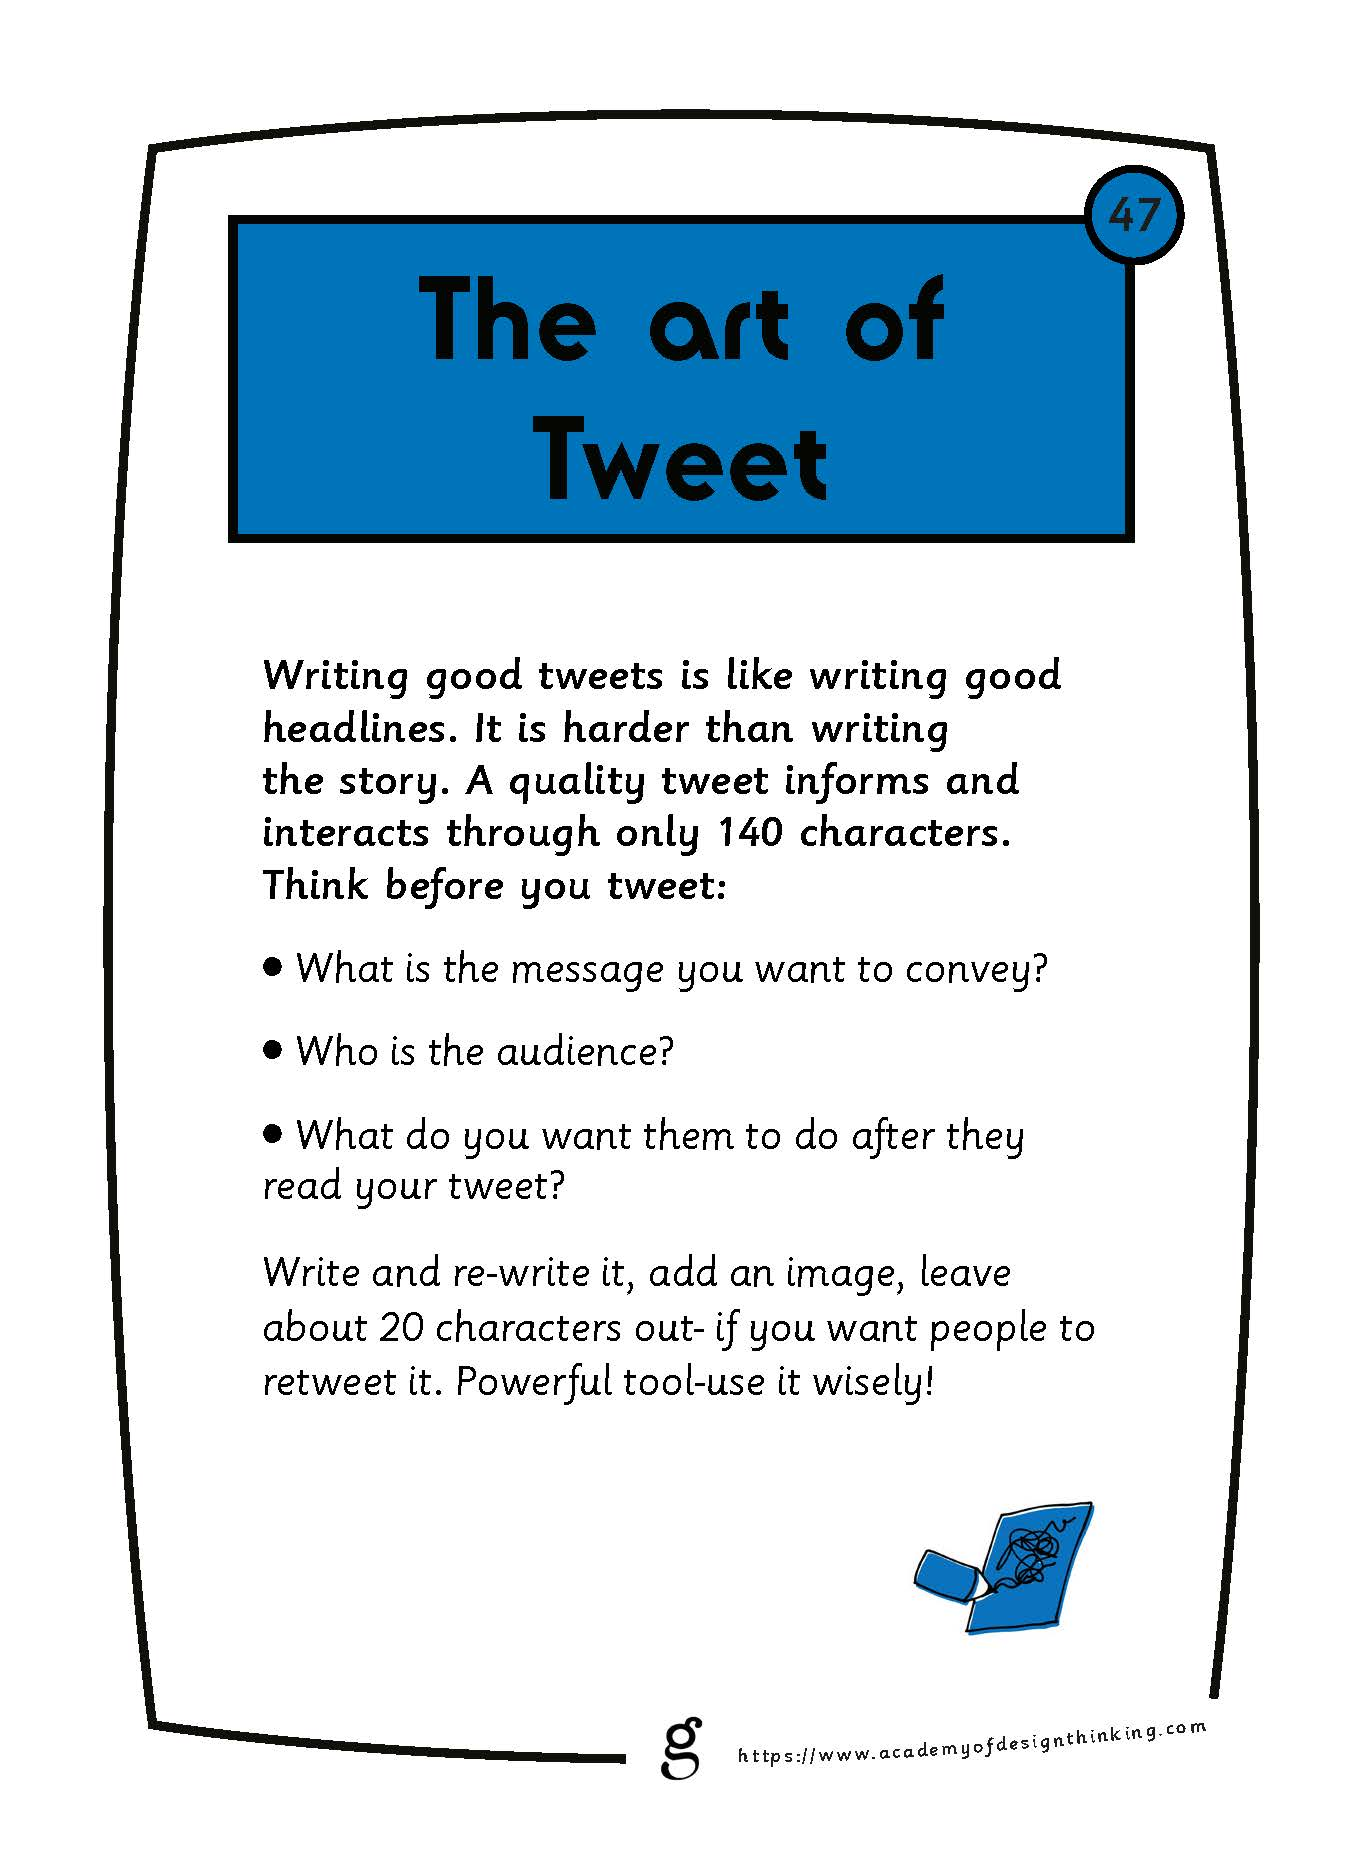 The Art of Tweet